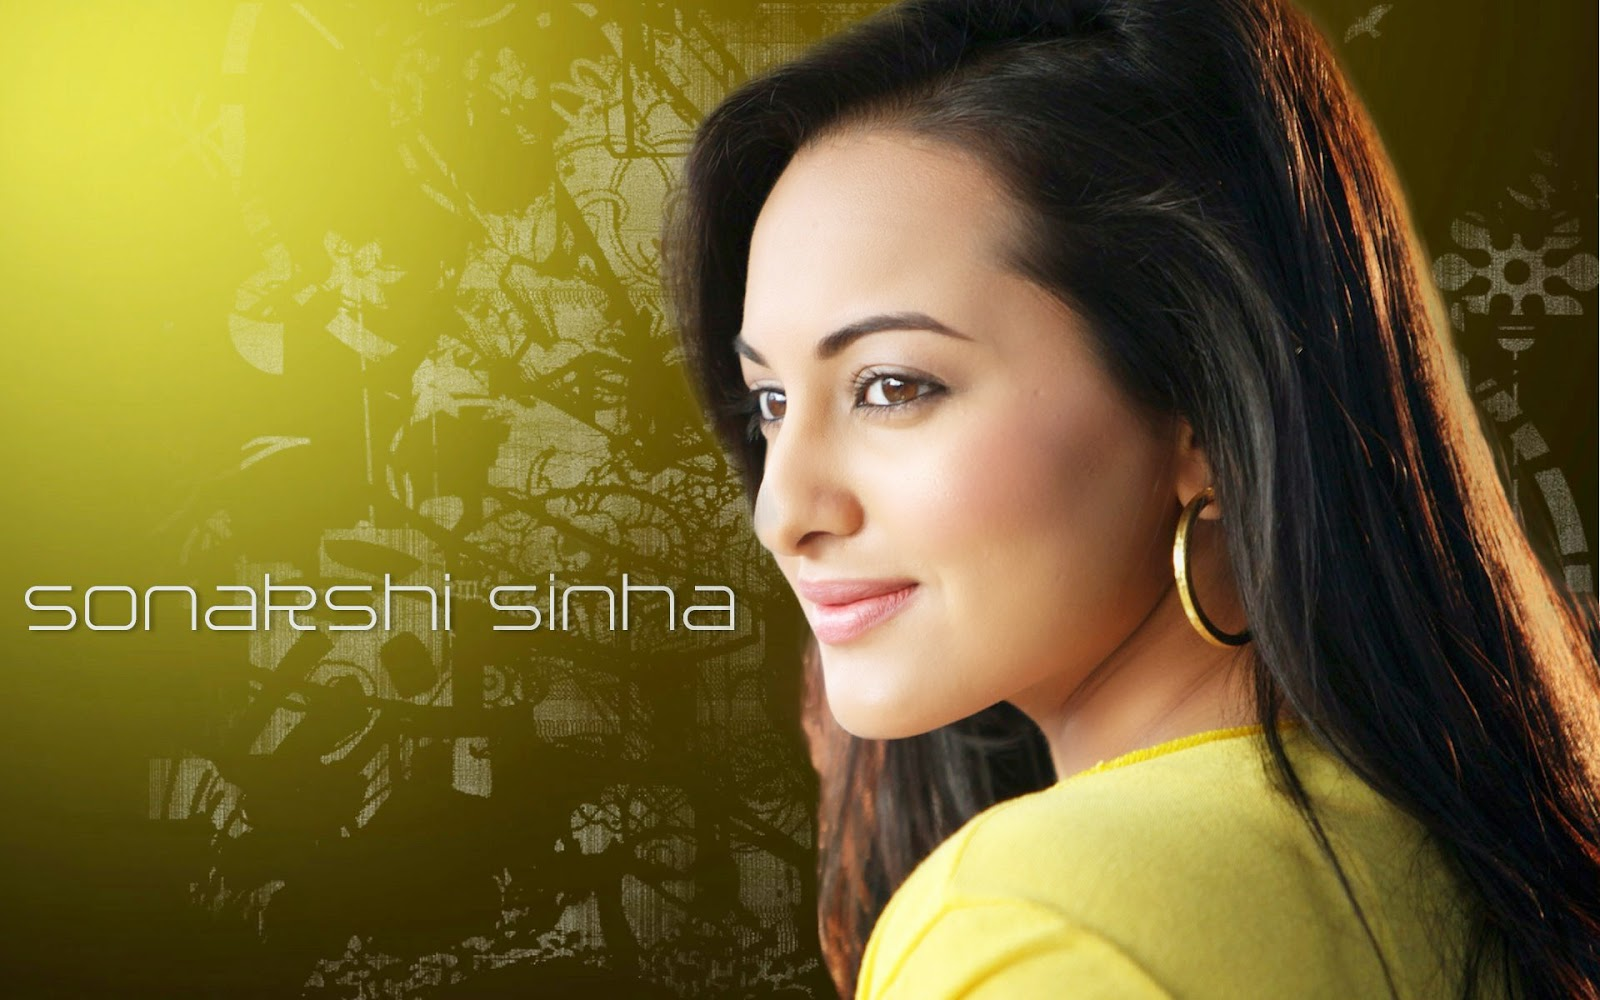 Sonakshi Sinha Hd Wallpapers: Sonakshi Sinha New HD Wallpapers 2014